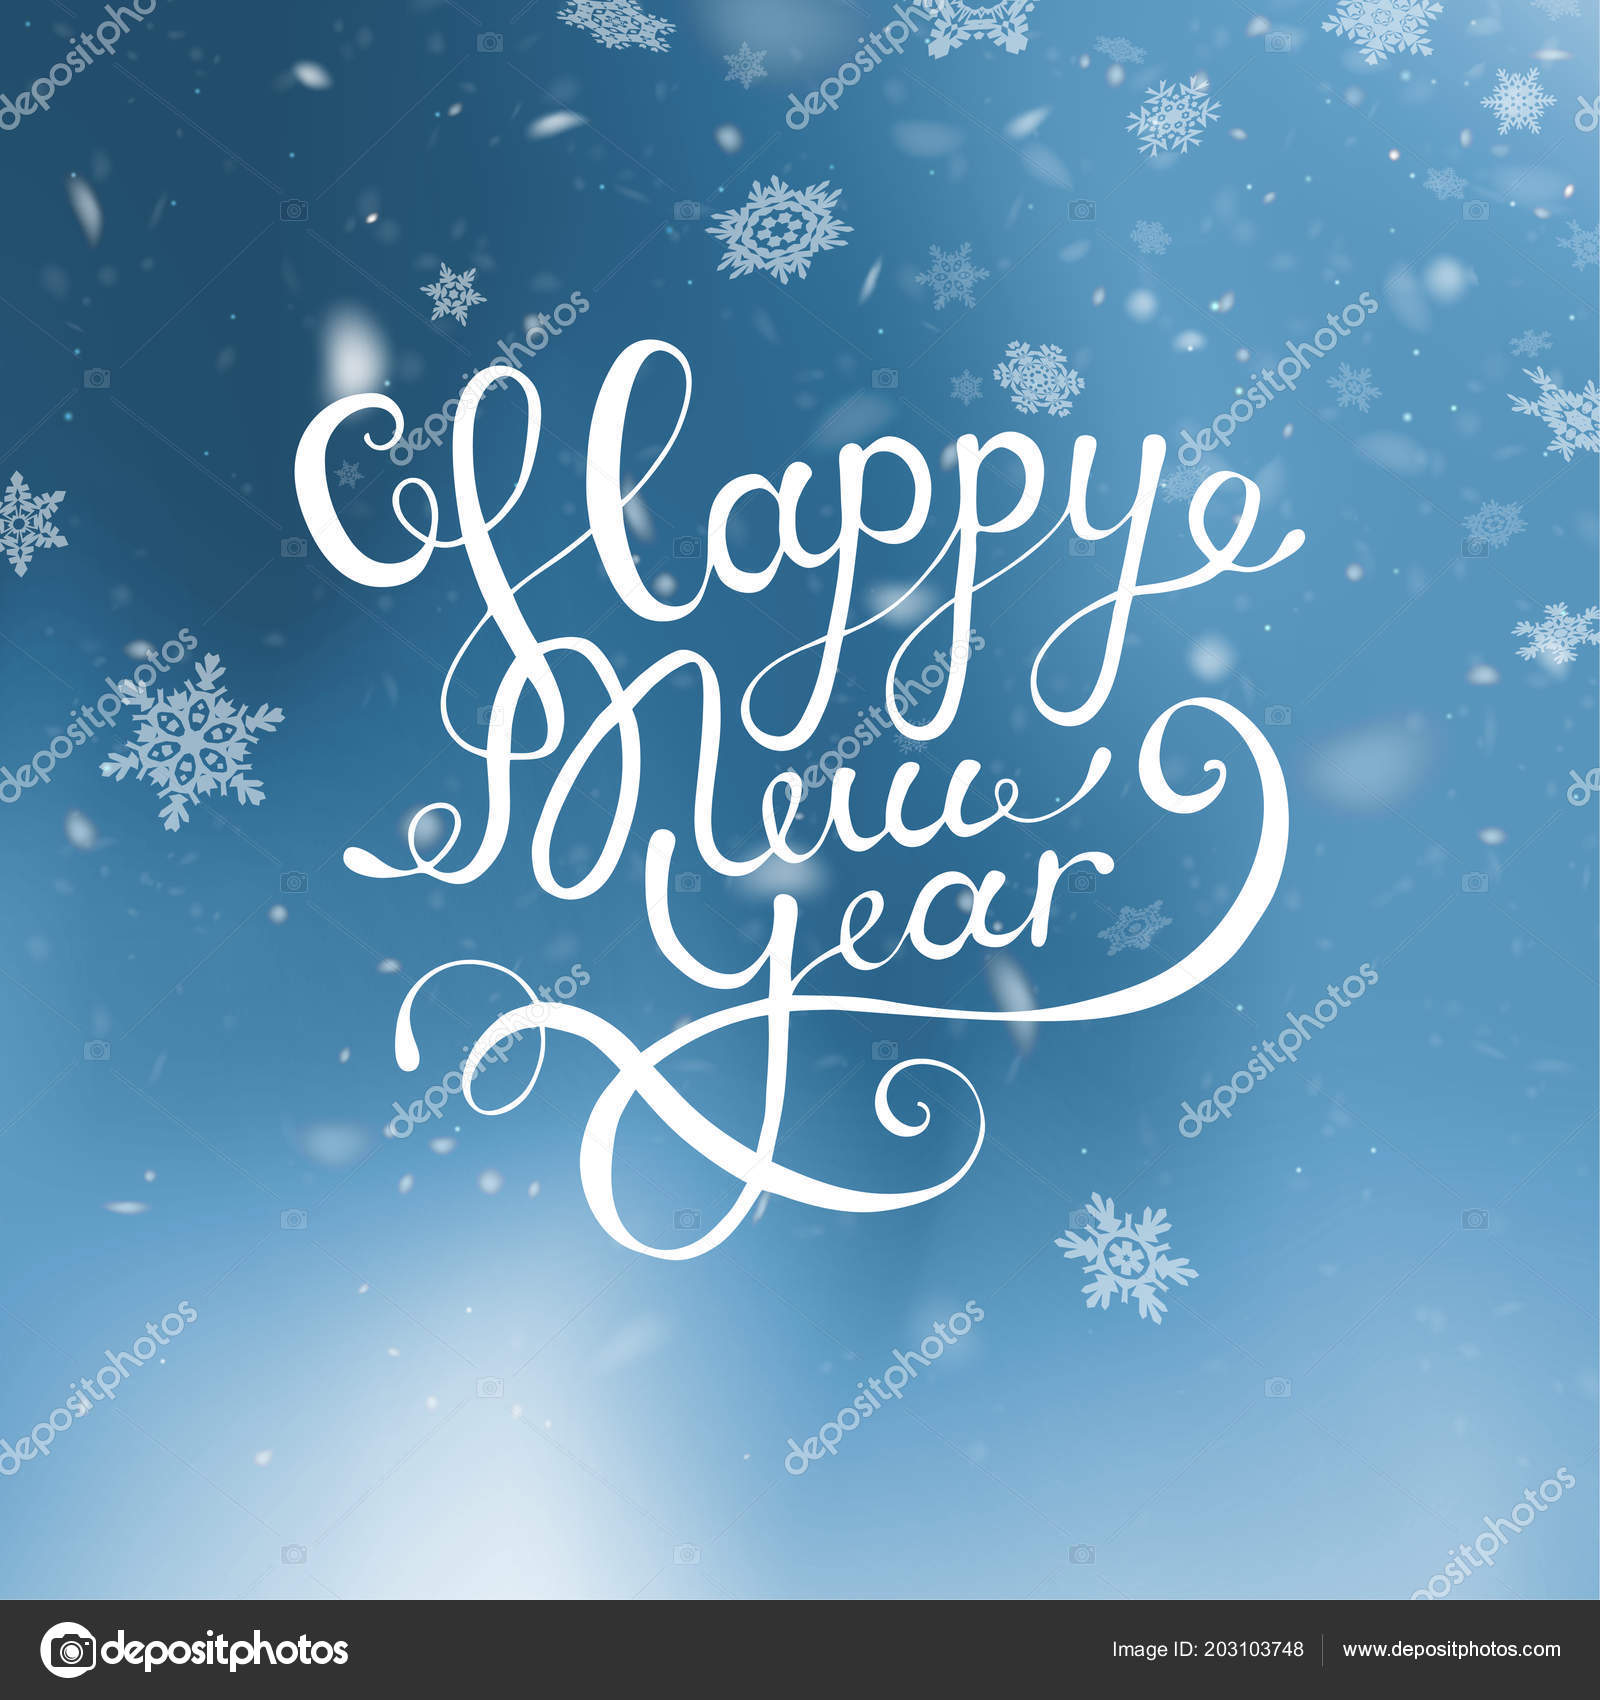 vector illustration christmas and happy new year blurred blue background falling snow wallpaper